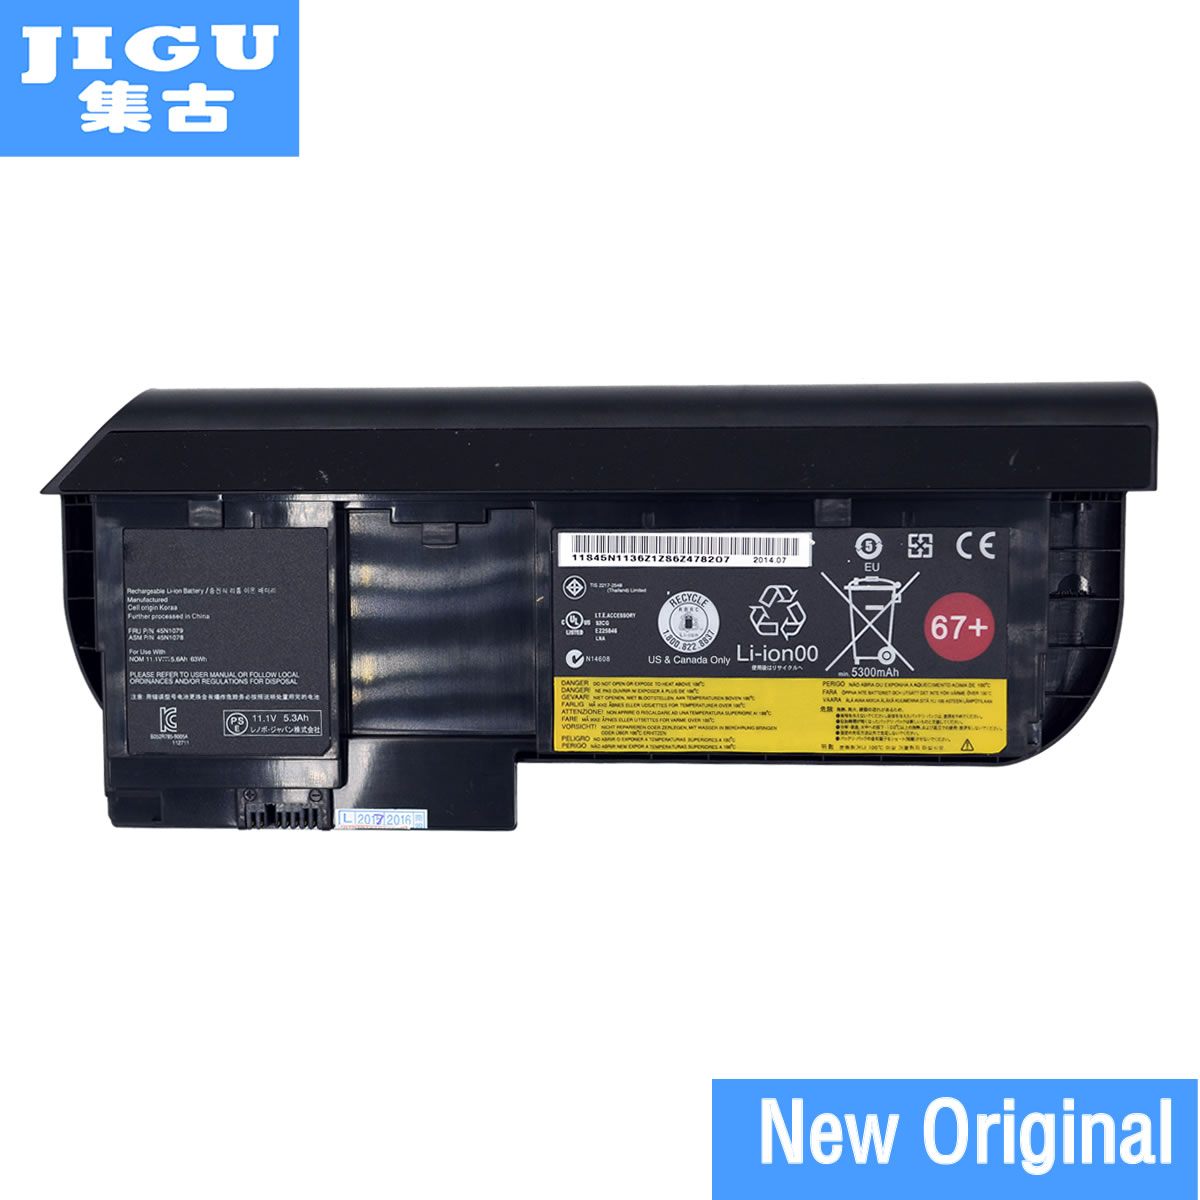 JIGU ORIGINAL LAPTOP BATTERY FOR LENOVO for ThinkPad X230 Tablet X230T Series 0A36285 42T4878 42T4879 42T4881 42T4882 original new 45n1097 battery for lenovo thinkpad tablet 2 batteria batteries 3 7v 8 12ah 30wh page 1